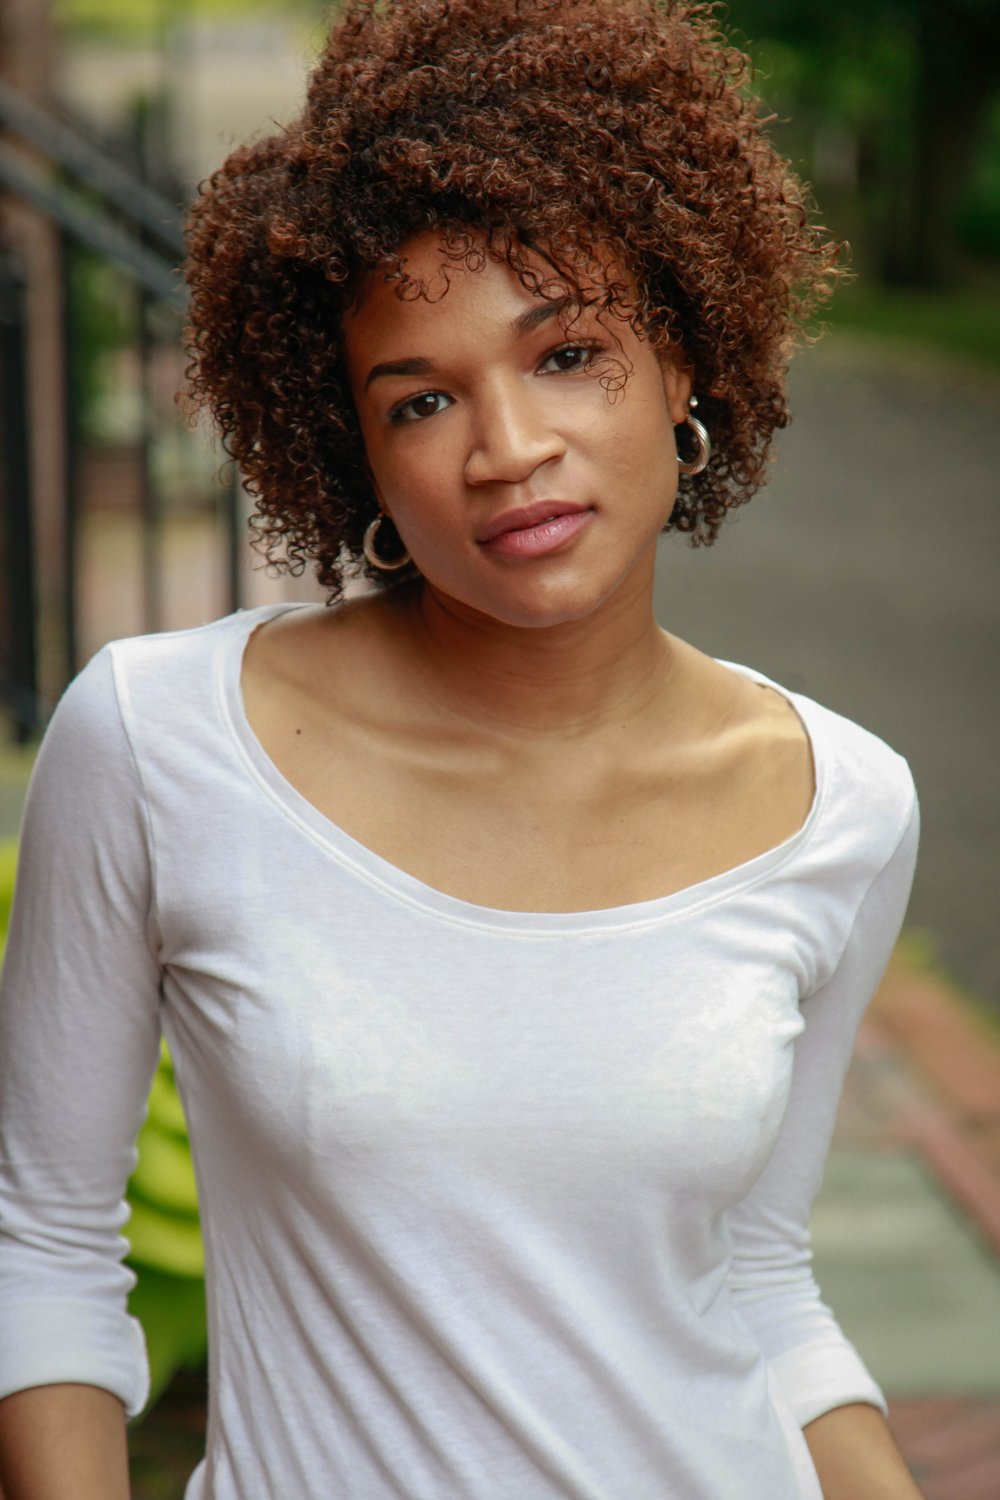 - BRIE COVINGTON is a 2017 graduate from The State University of New York at Fredonia, where she received her Bachelor of Fine Arts in Acting. Following graduation, she appeared as Iris in The Tempest at the Tom's River Shakespeare Festival's Inaugural Season. Selected regional credits include: 12 Angry Jurors, Little Women, James and the Giant Peach, Peter Pan, The Complete Works of Shakespeare Abridged. She is thrilled to join the Witherspoon Circle evening reading series.